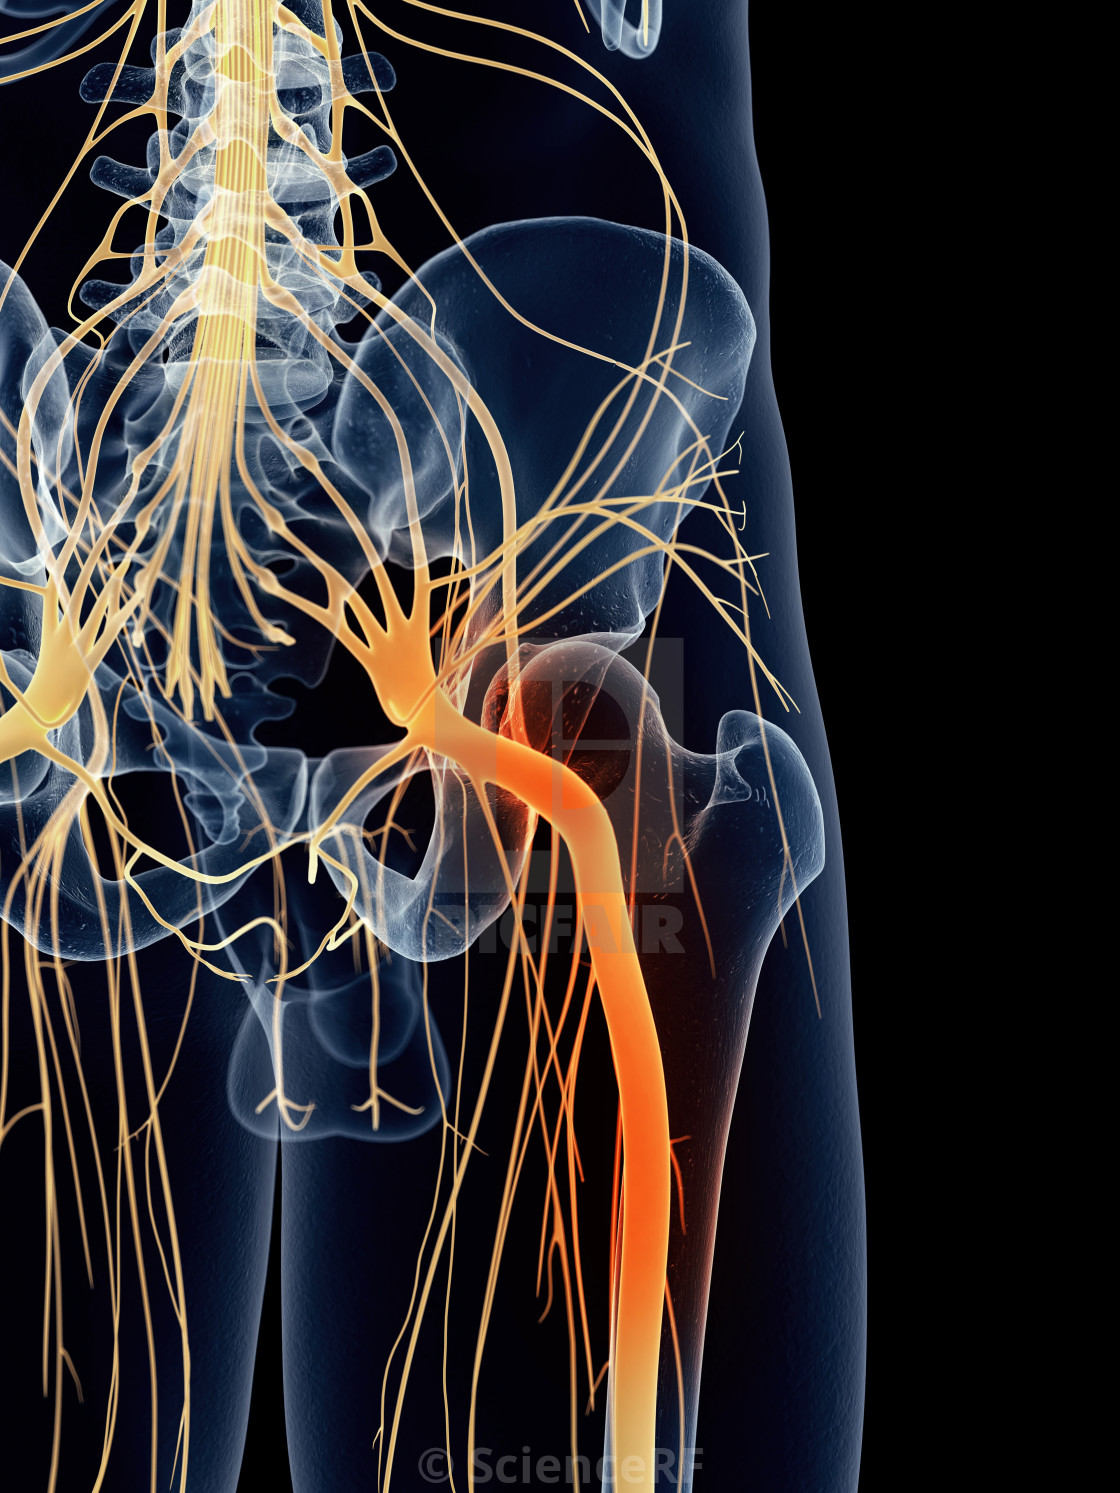 Sciatic Nerve Pain License Download Or Print For 3900 Photos